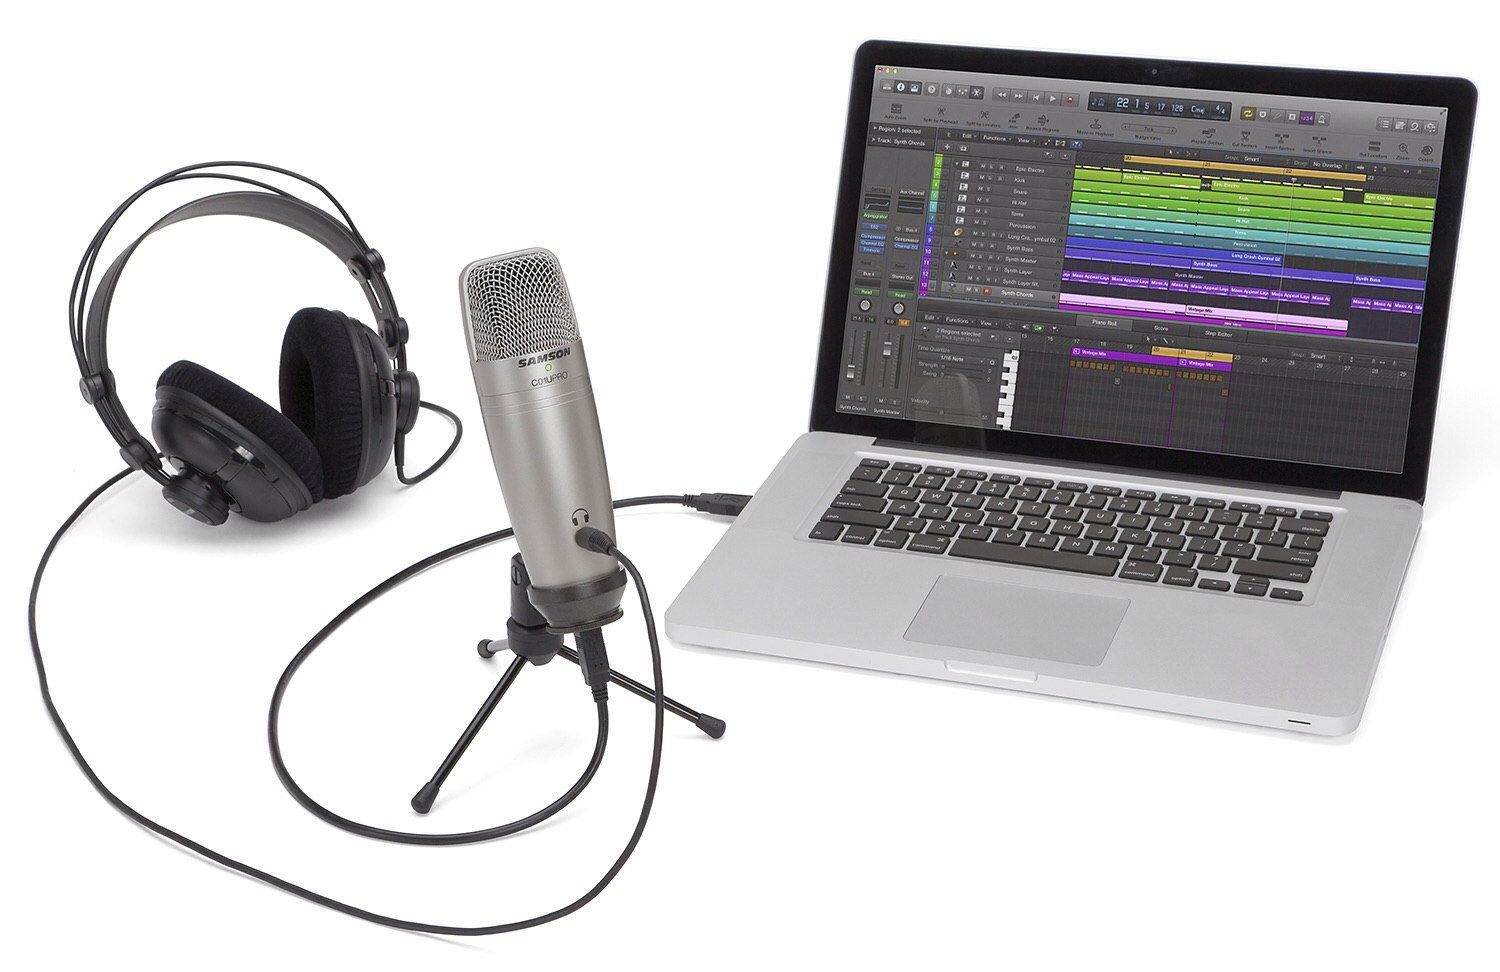 The Samson C01U Pro USB Condenser Microphone (pictured with MacBook, but great for iPad too). ($70)